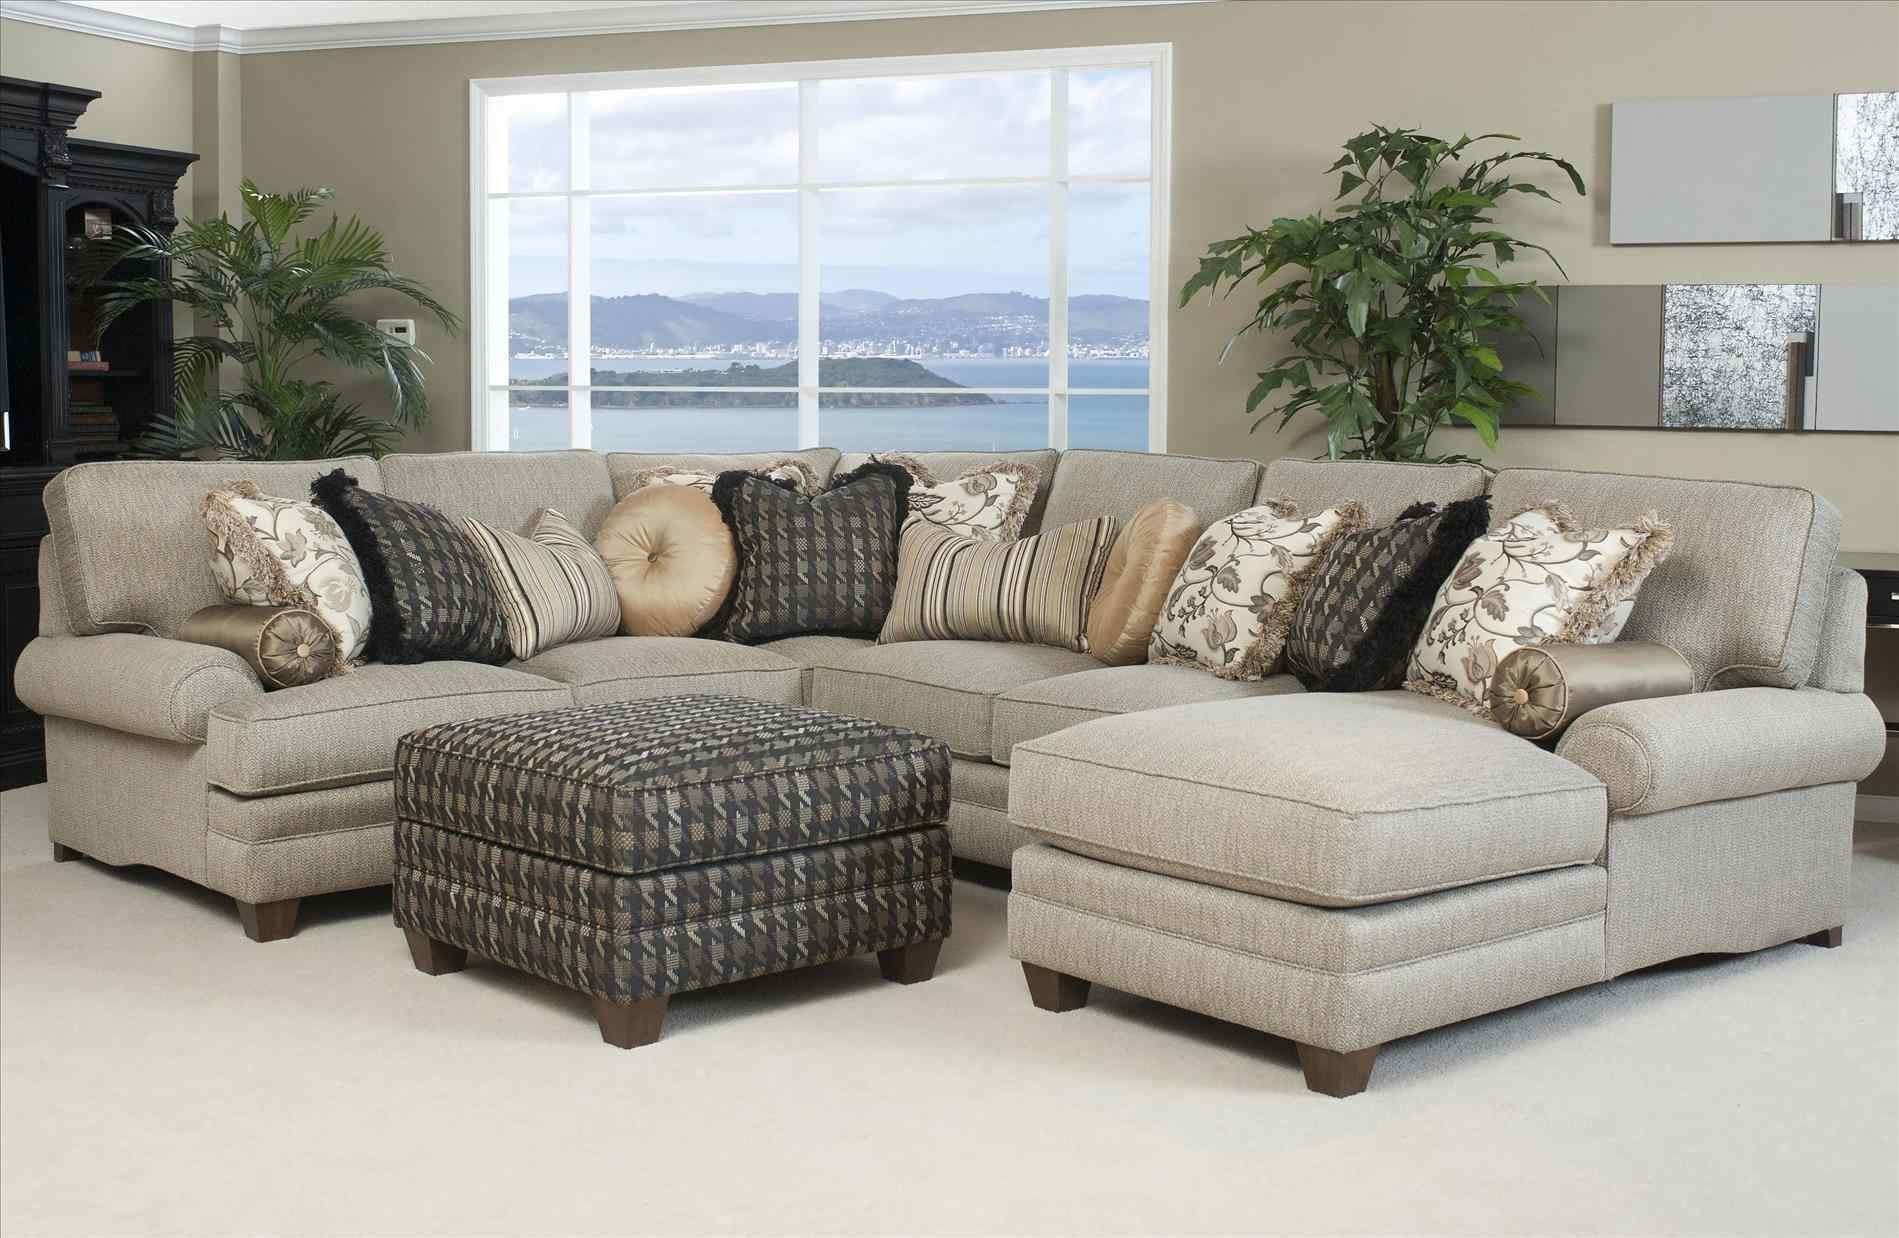 Best For Small Spaces Curved Sofas For Small Spaces Sectional 400 x 300